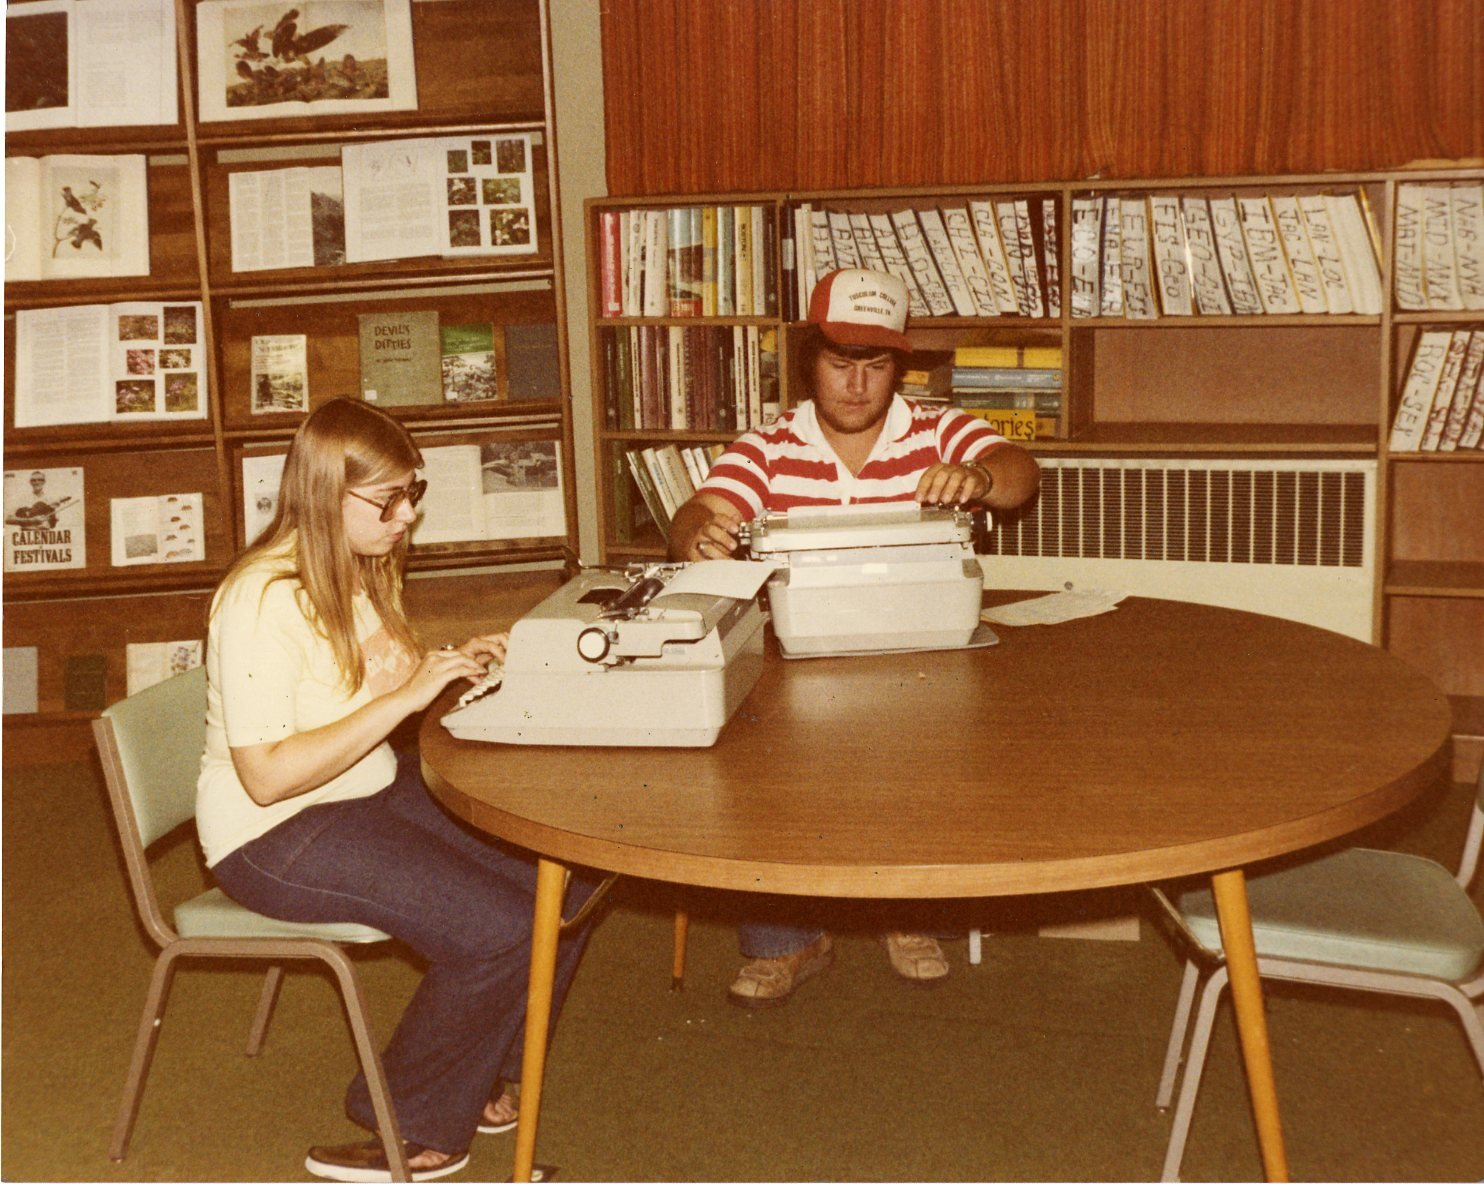 Students working, circa 1970s.